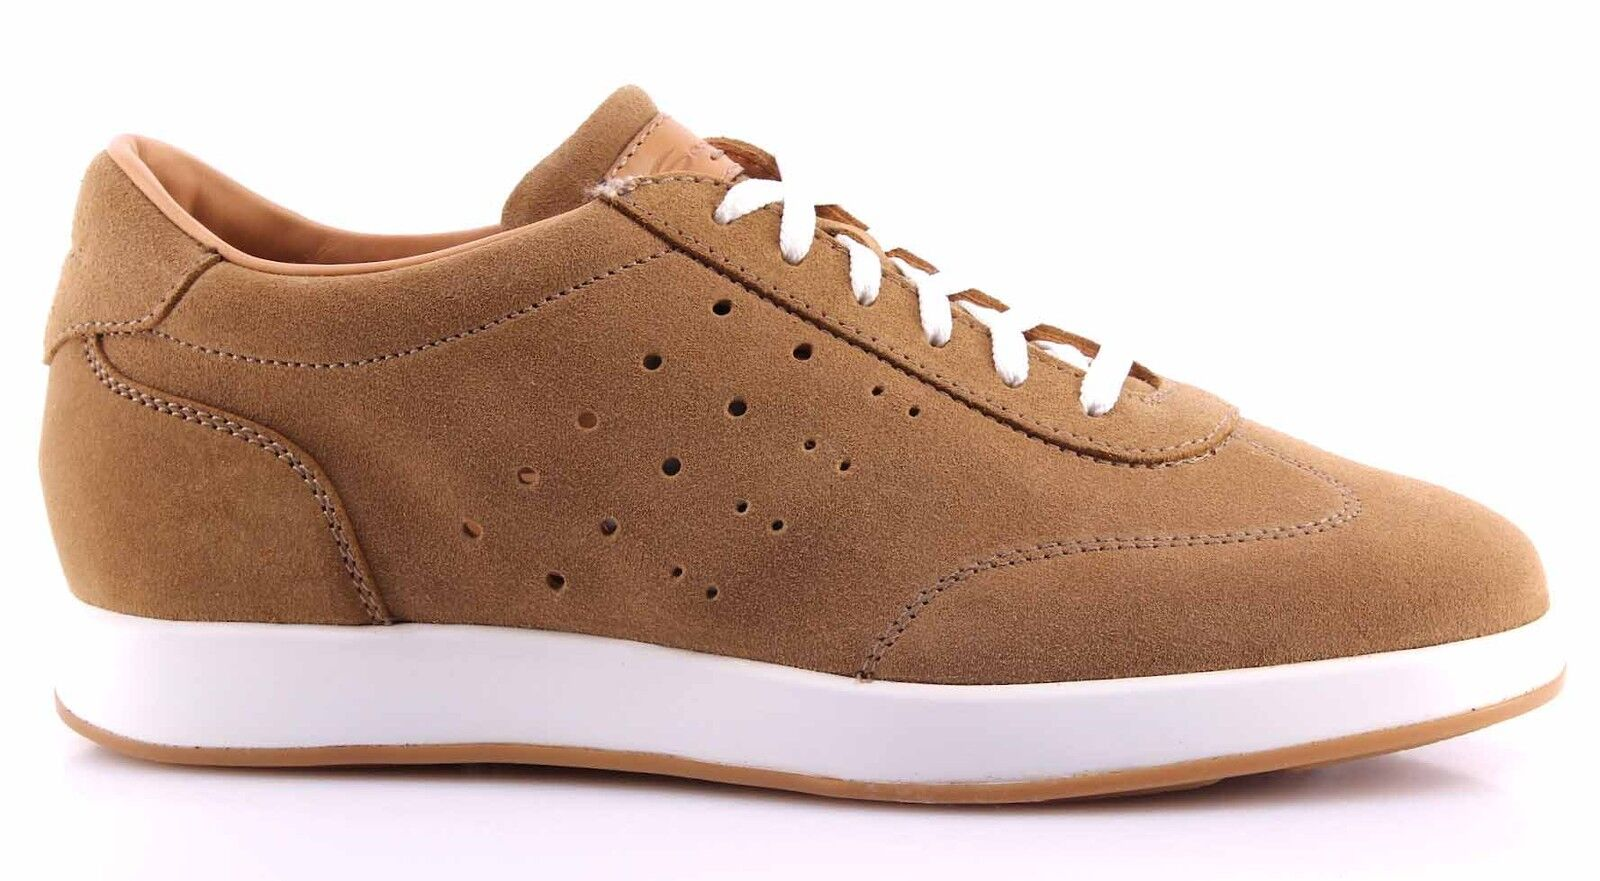 Men's Shoes Made Sneakers SANTONI Suede Brown Top Quality Luxury Made Shoes In Italy New 1c14a3